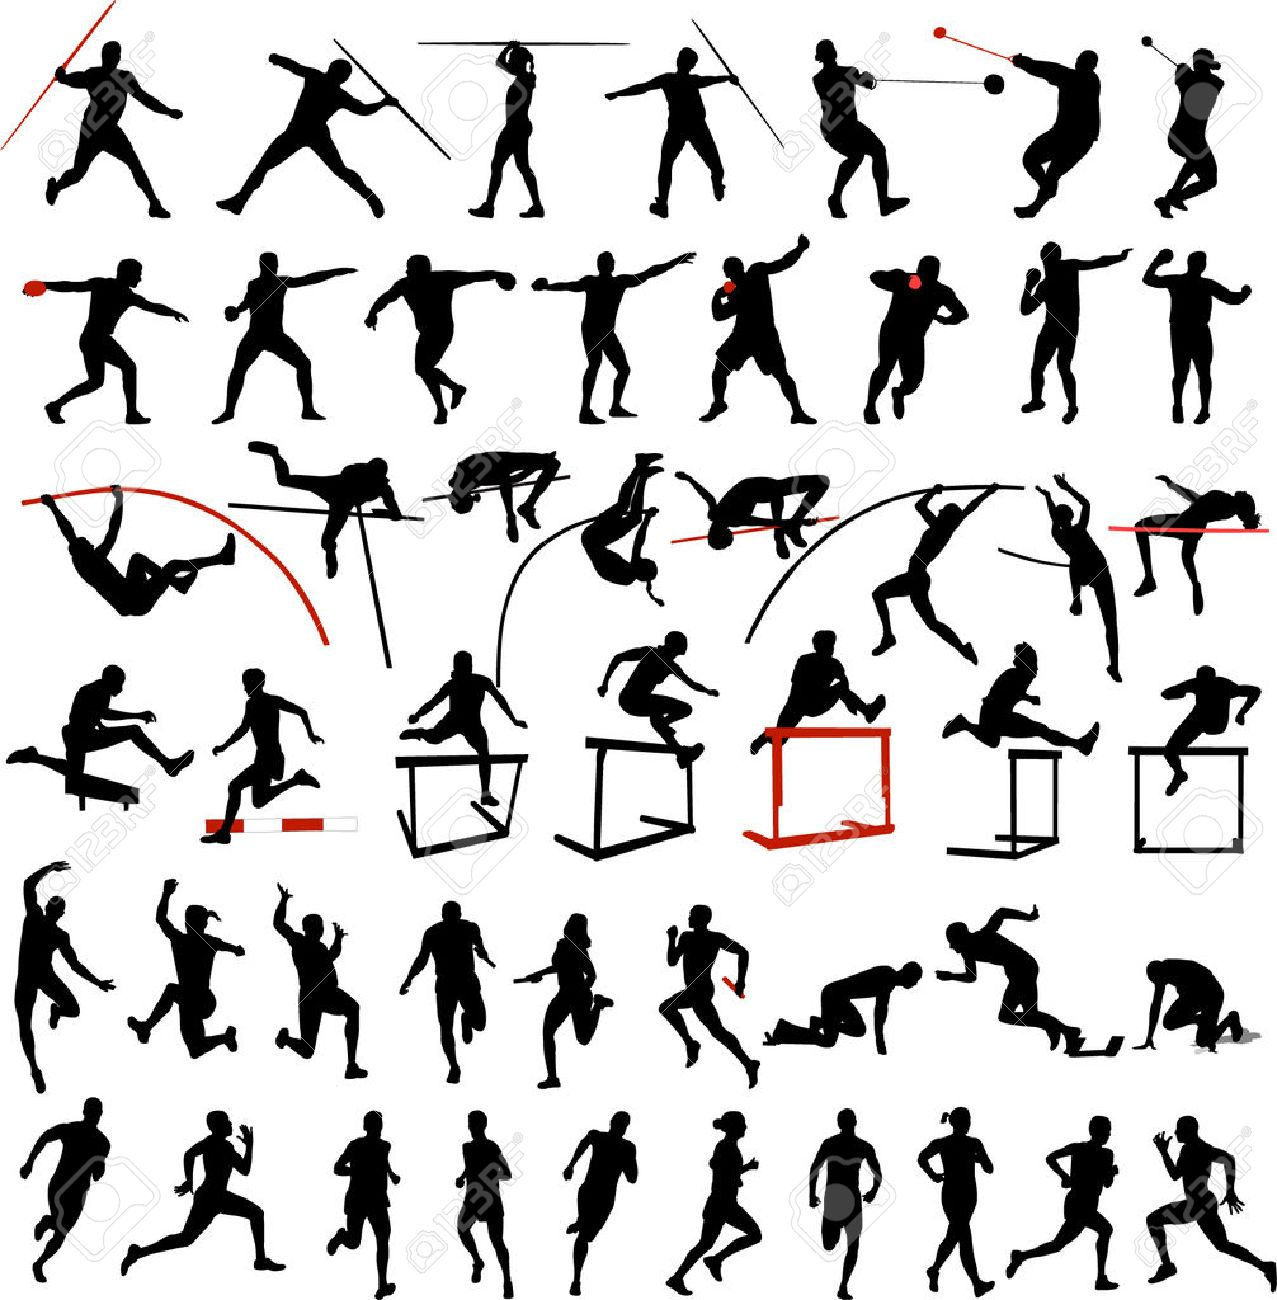 track and field clipart black and white Google Search